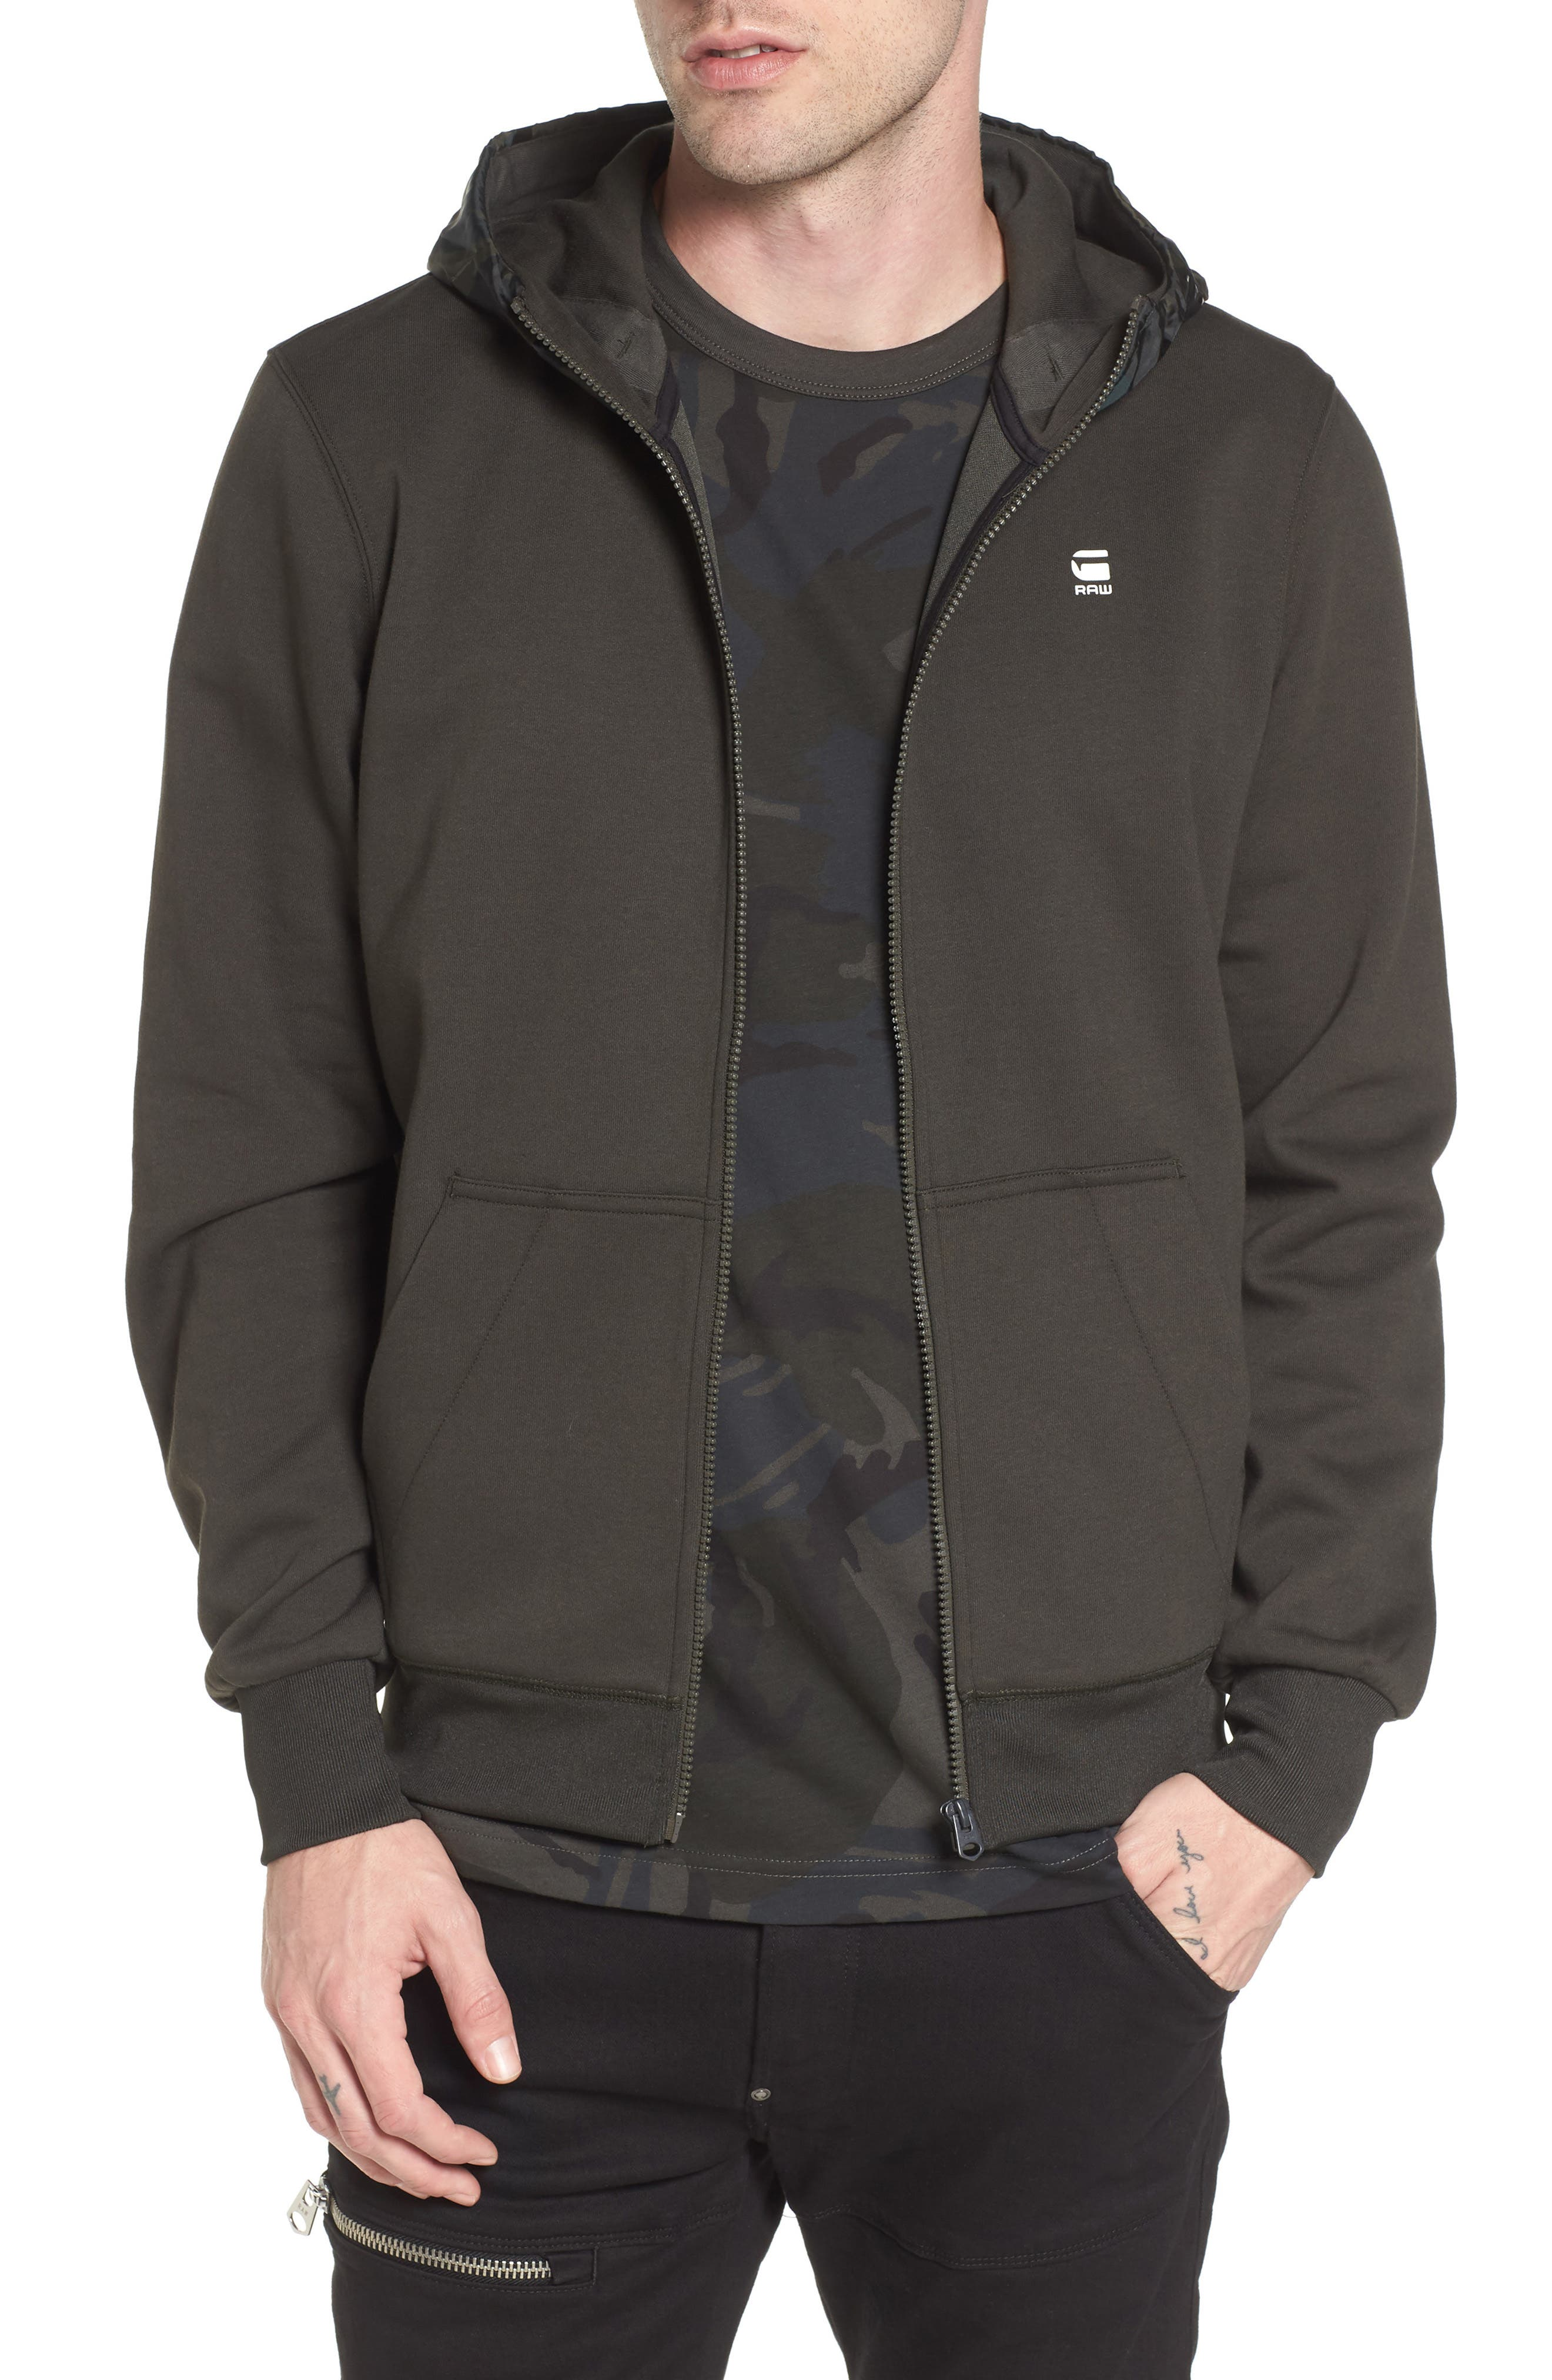 G-Star Raw Core Hooded Zip Sweatshirt